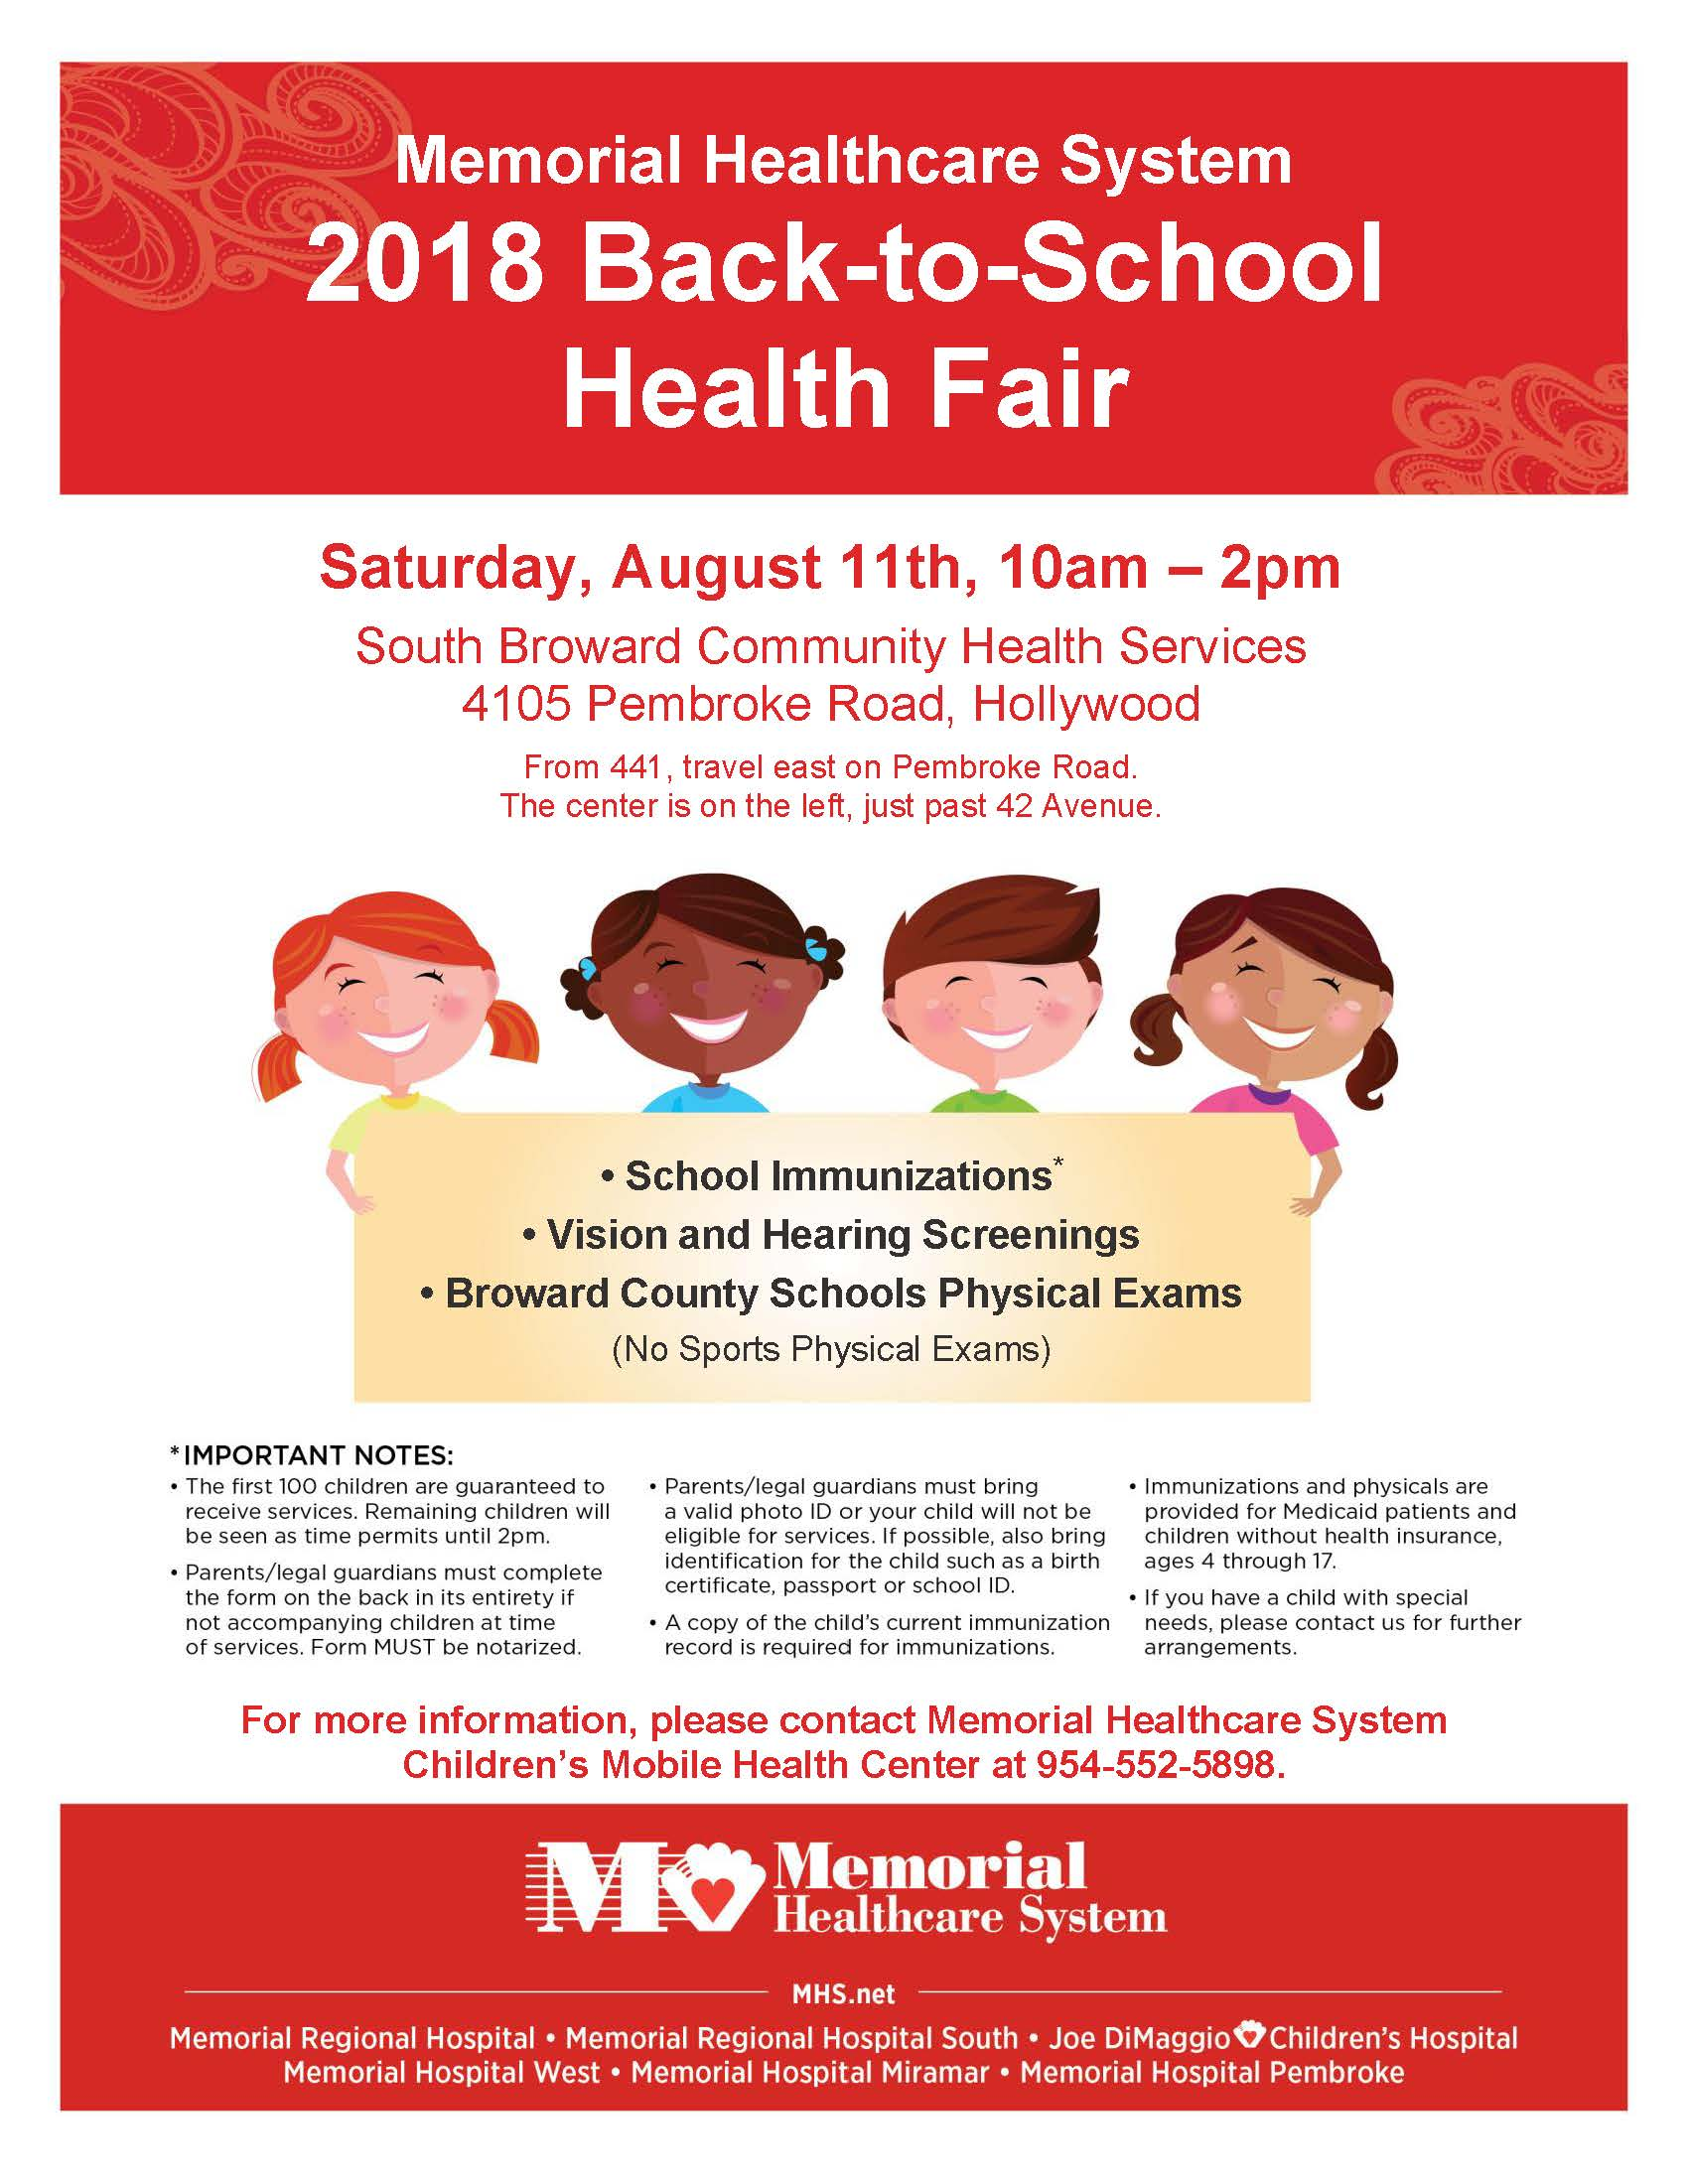 2018 Back-to-School Health Fair